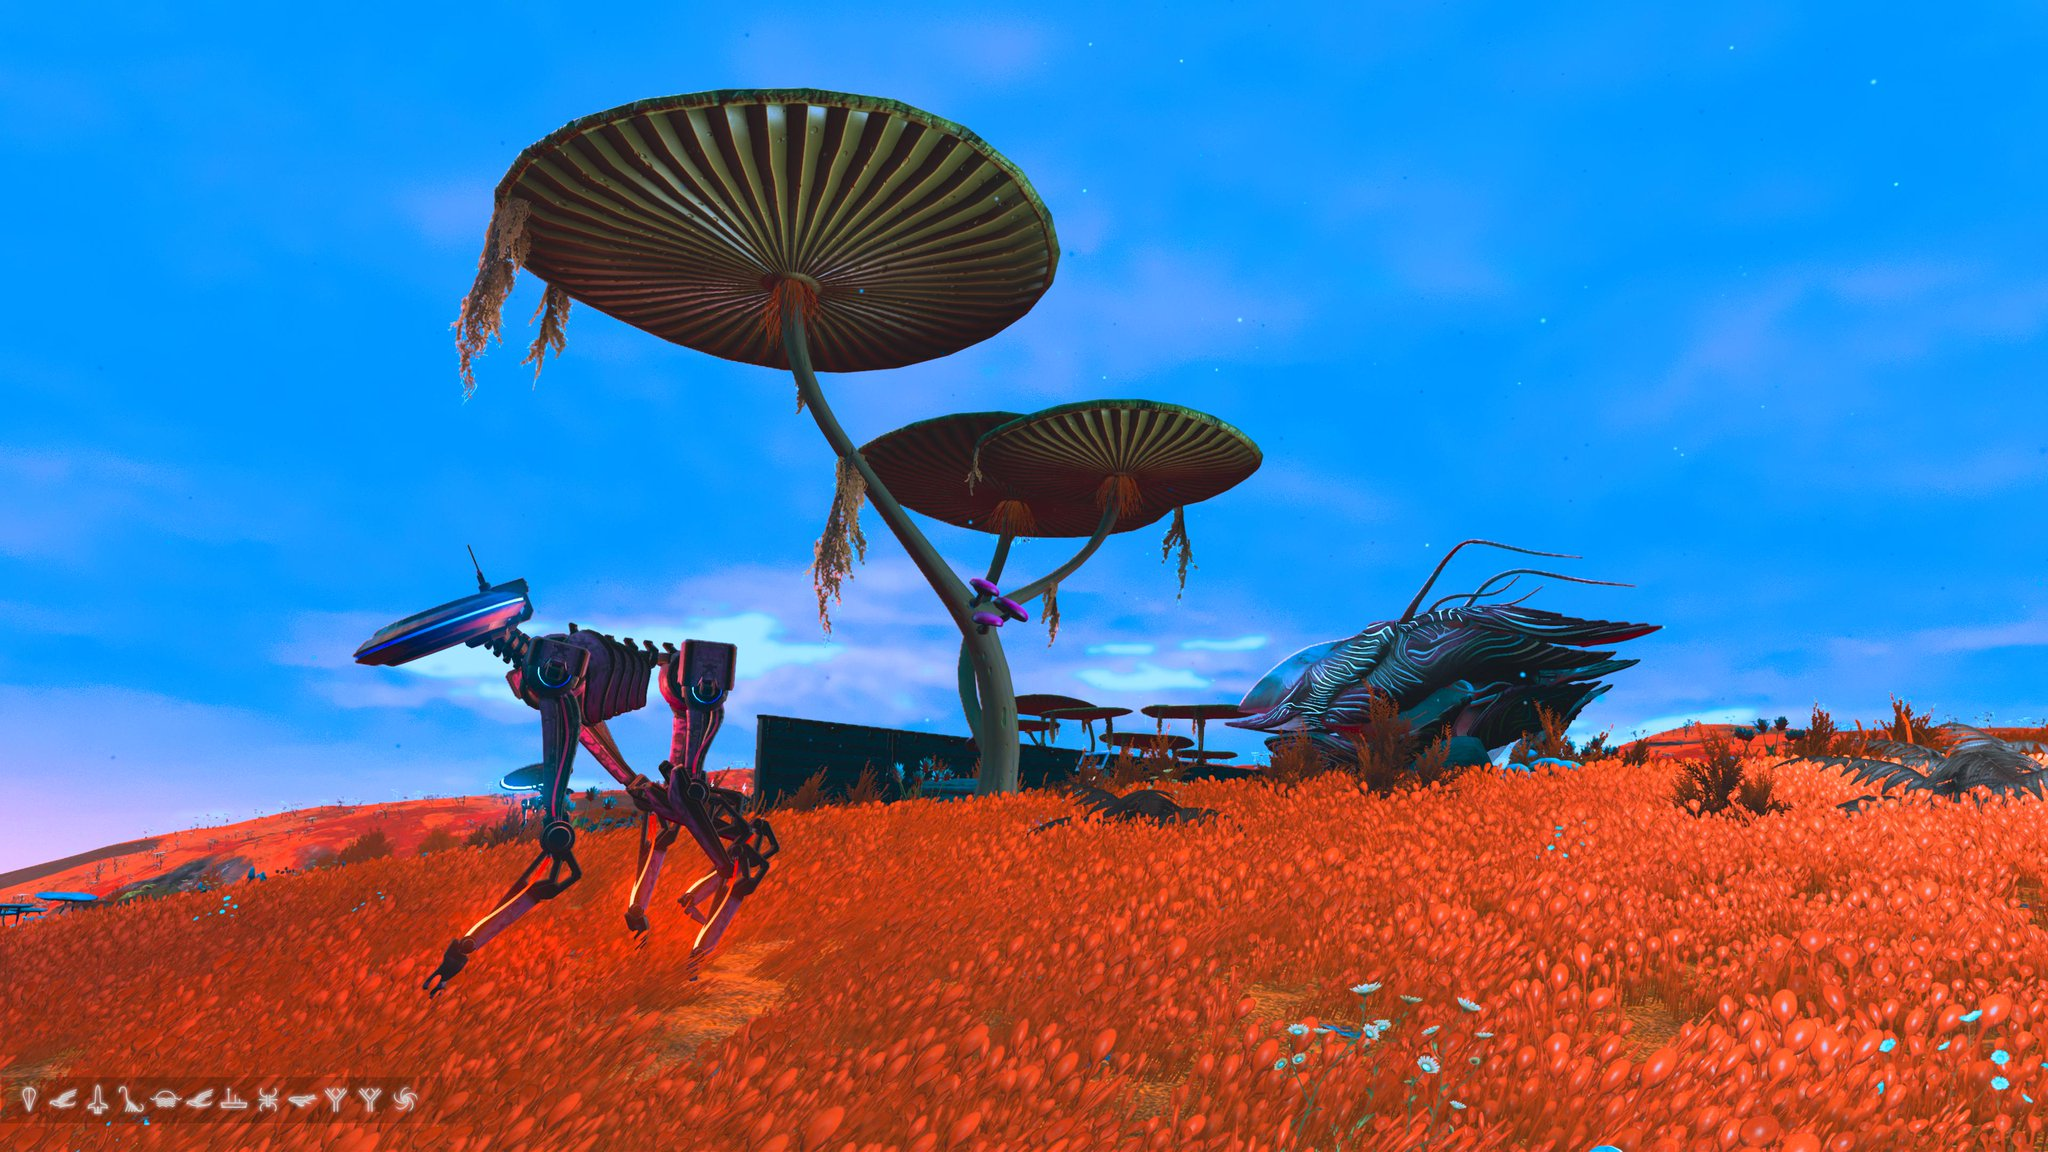 A blue sky, orange grass - a mysterious organic ship sits barely in view, a metallic dog like robot walks past.